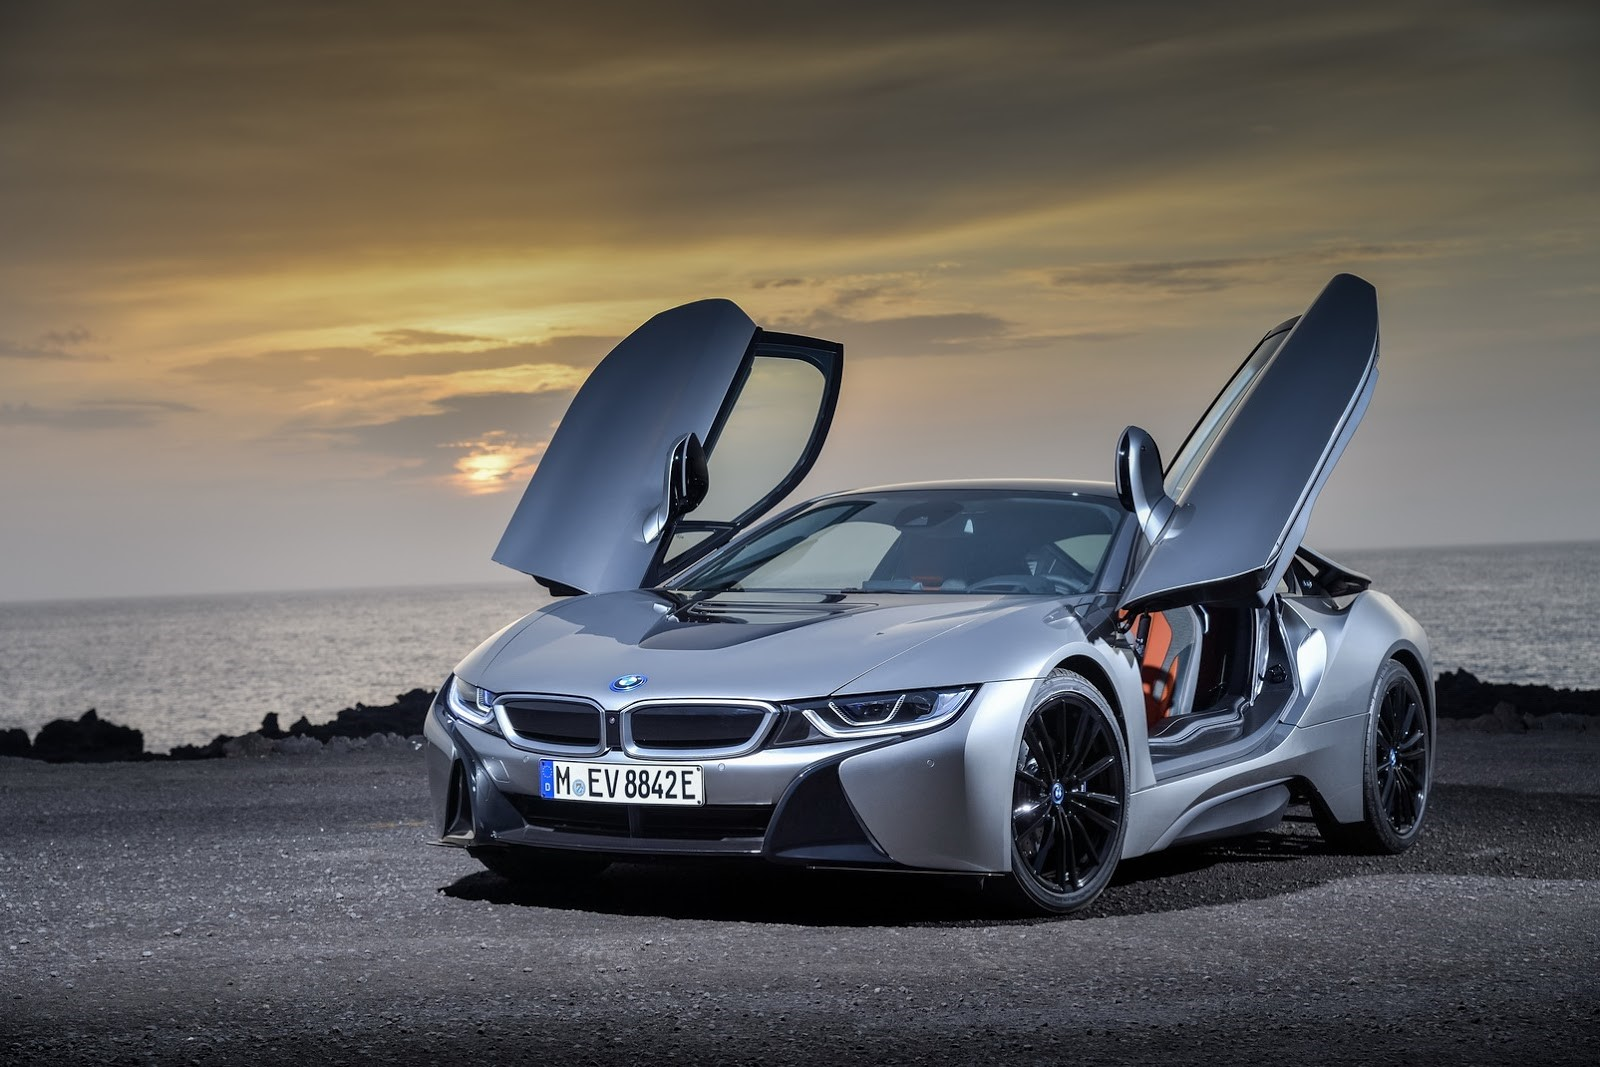 Two Bmw Models Will Celebrate Their World Premiere At The 2018 Detroit Auto Show Between January 14 28 Updated I8 Coupe And New X2 Small Crossover